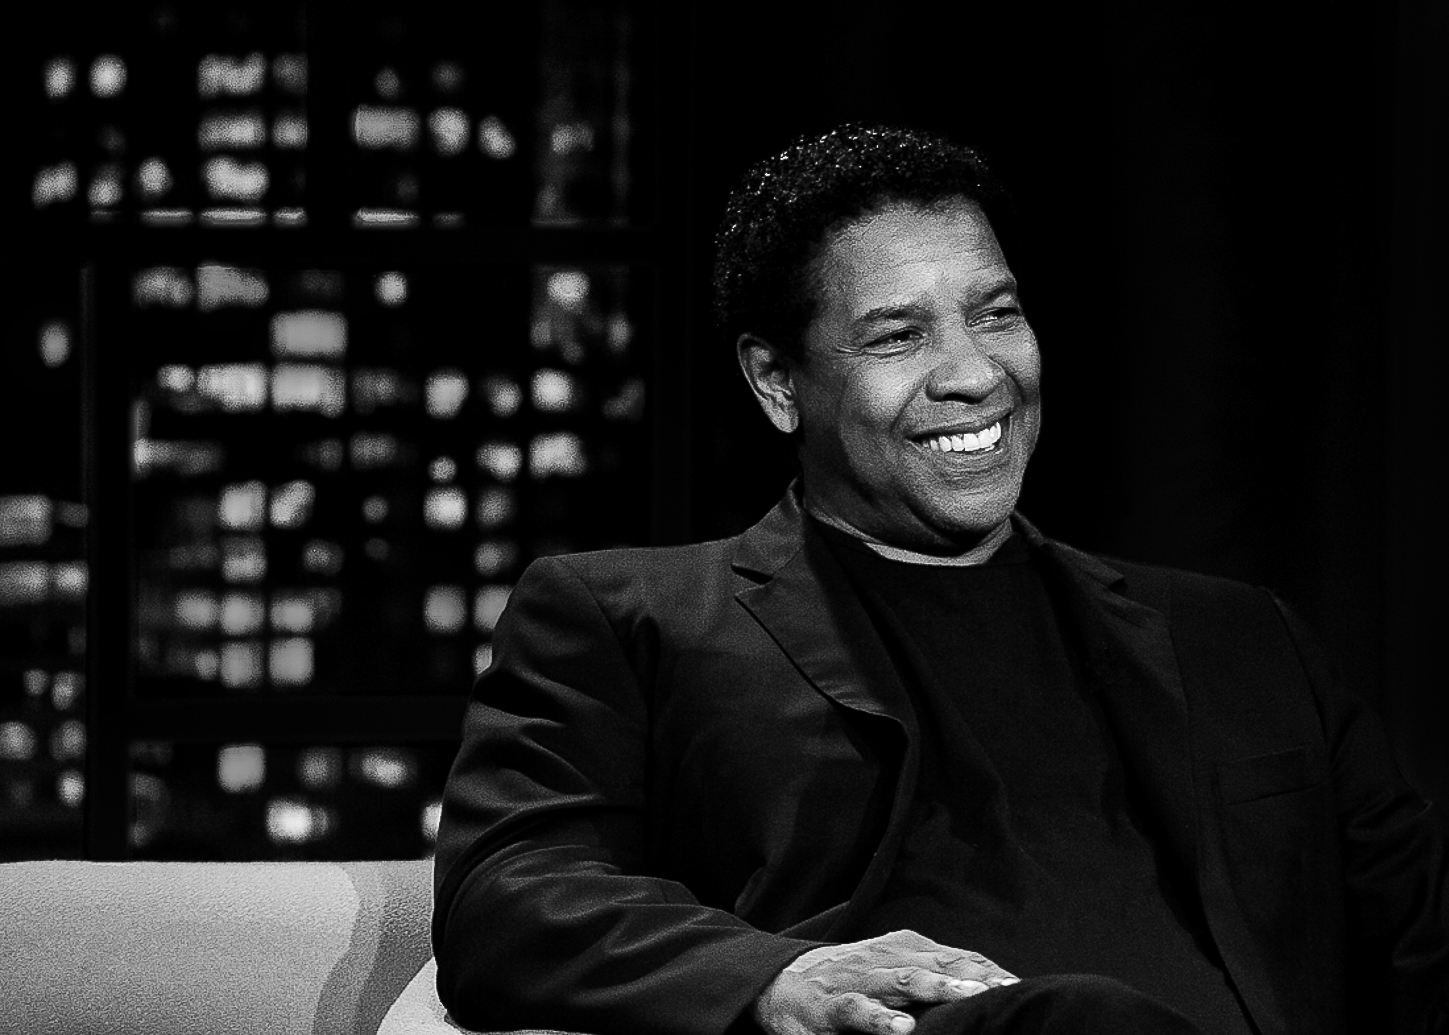 Denzel Washington / jvephoto.com